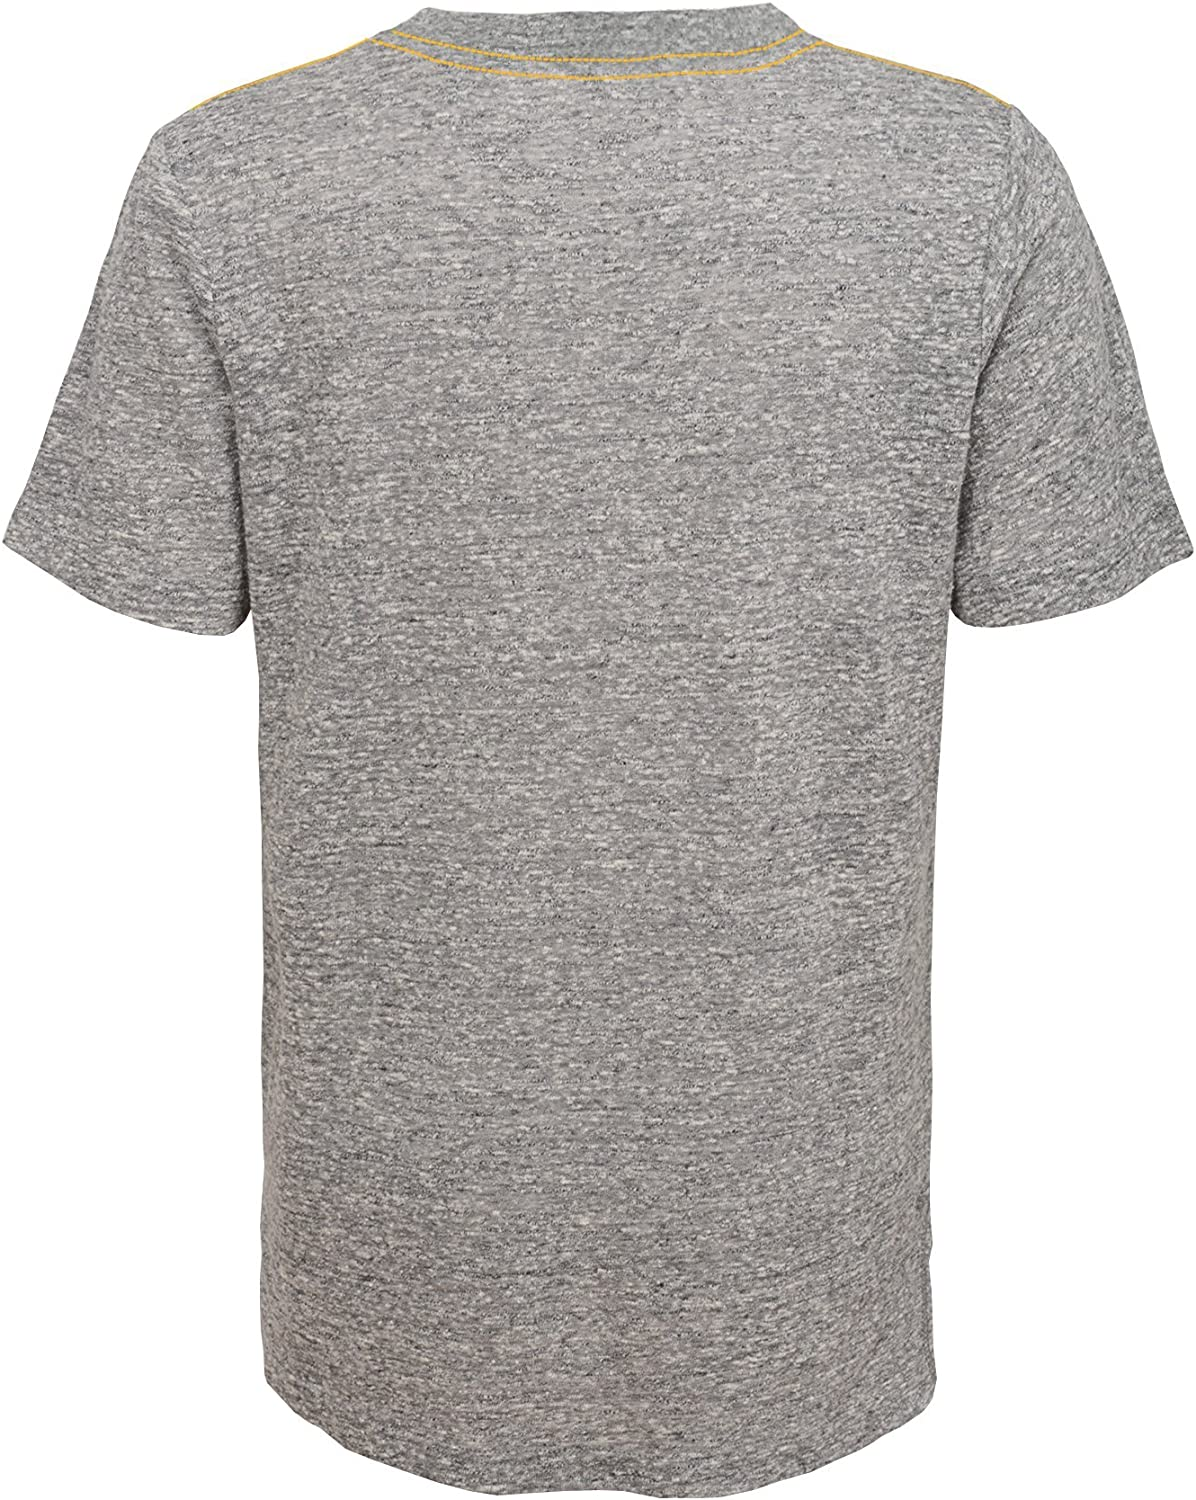 OuterStuff Boys Big Youth Heritage Short Sleeve Tri-Blend Tee